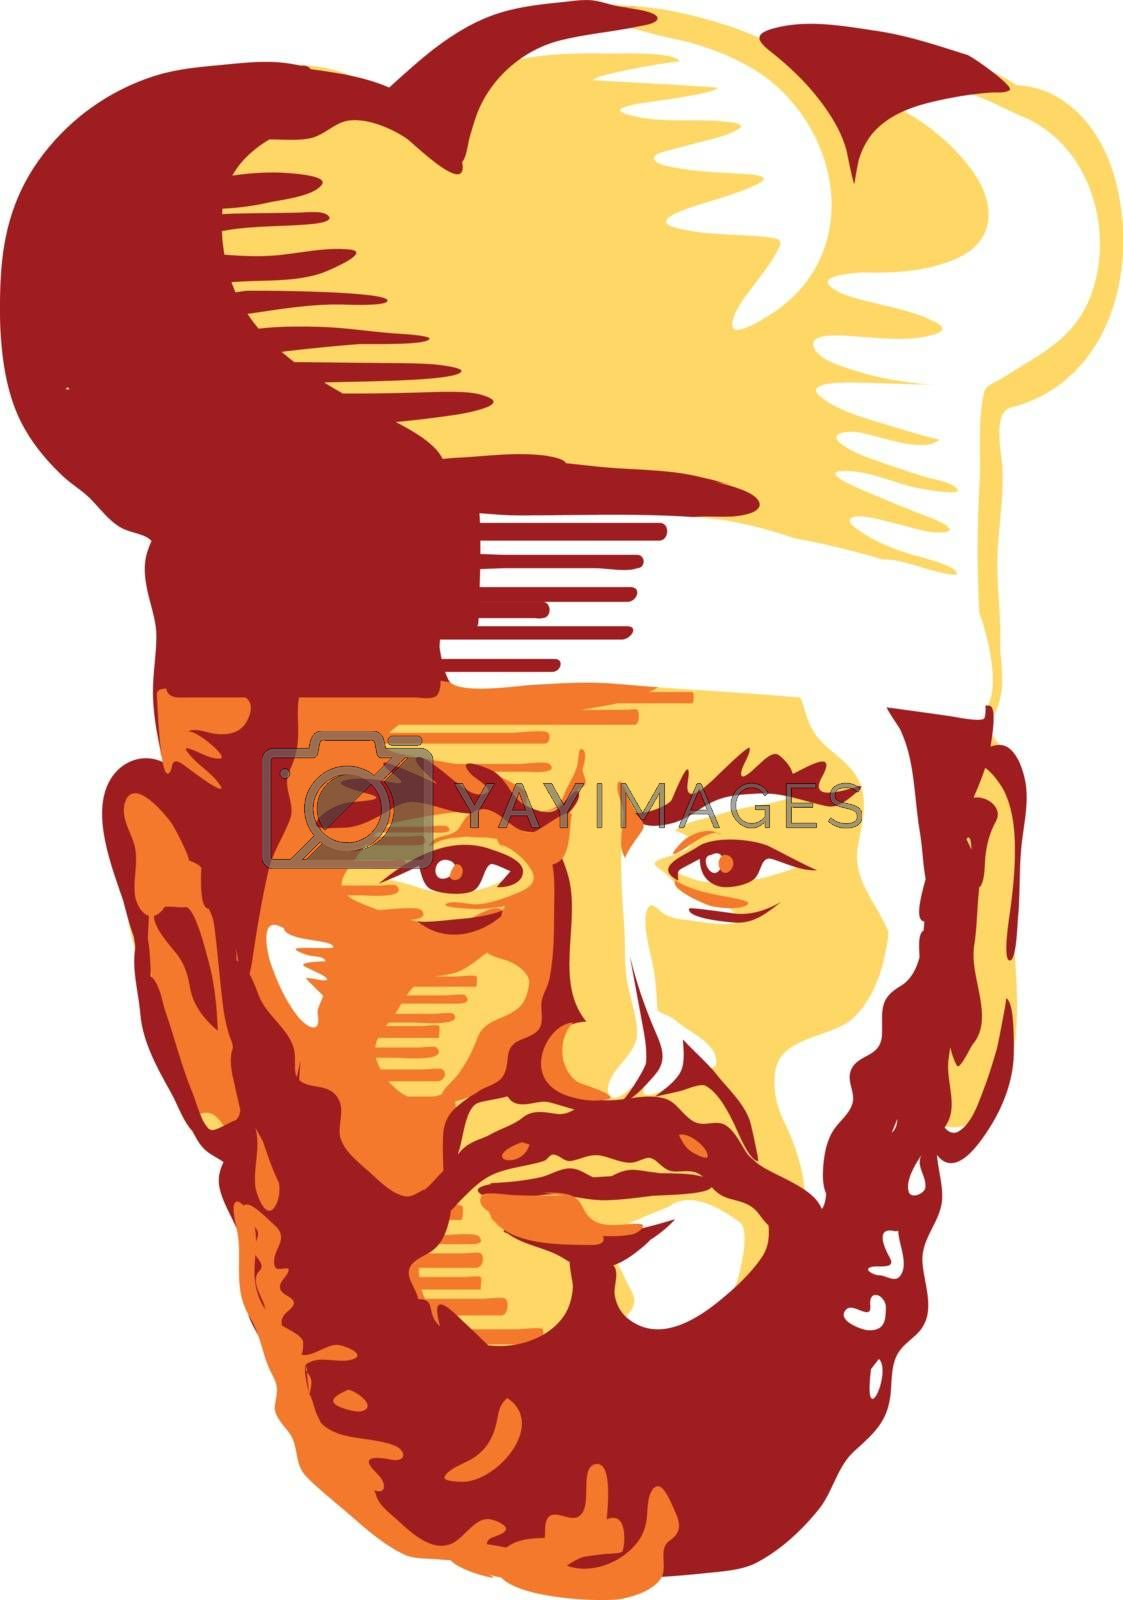 Retro style illustration of had of a hipster cook, chef or baker with beard or facial hair viewed from front on isolated background.